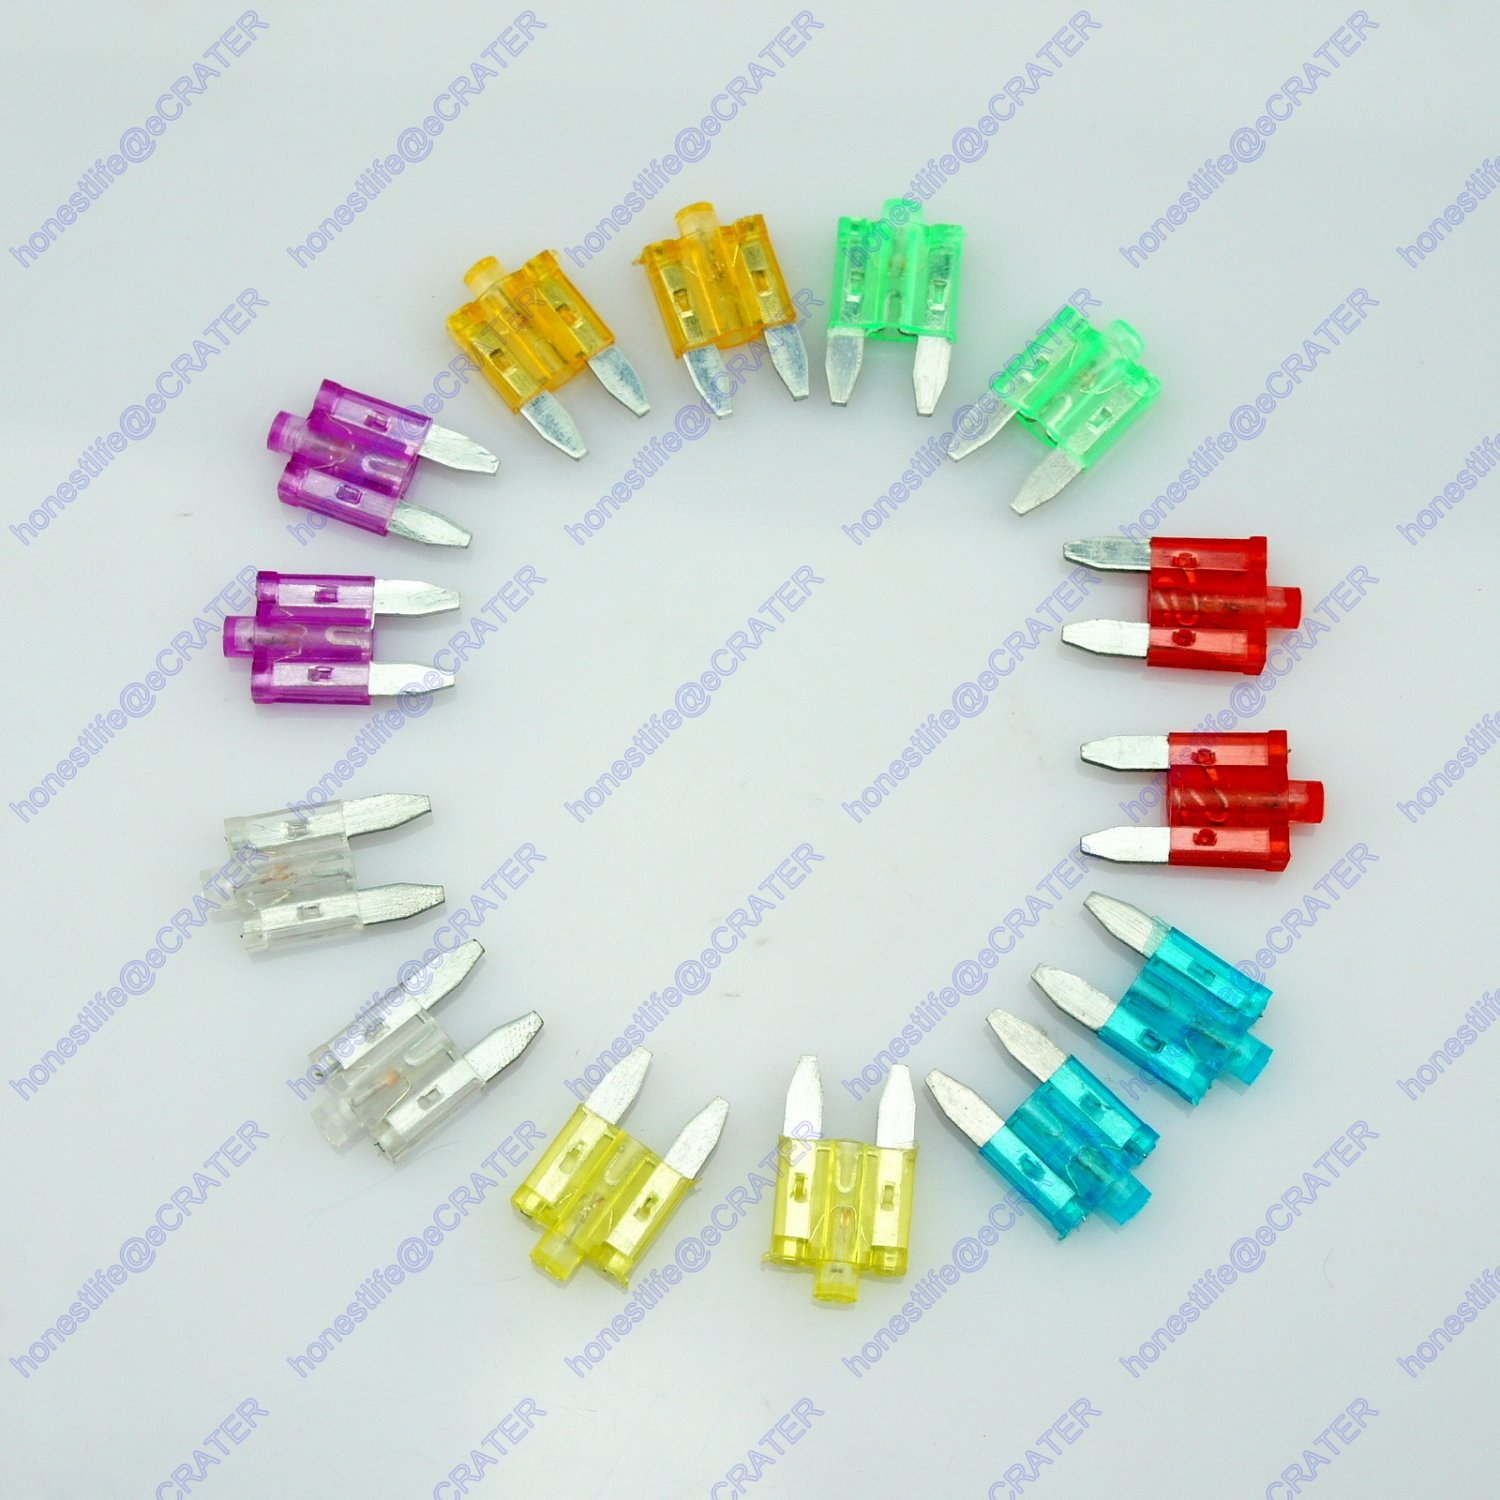 14 ATS LED Mini Blade Fuse Auto Car Suv Truck Boat RV 12V 24V 5A-35A Glow Blow